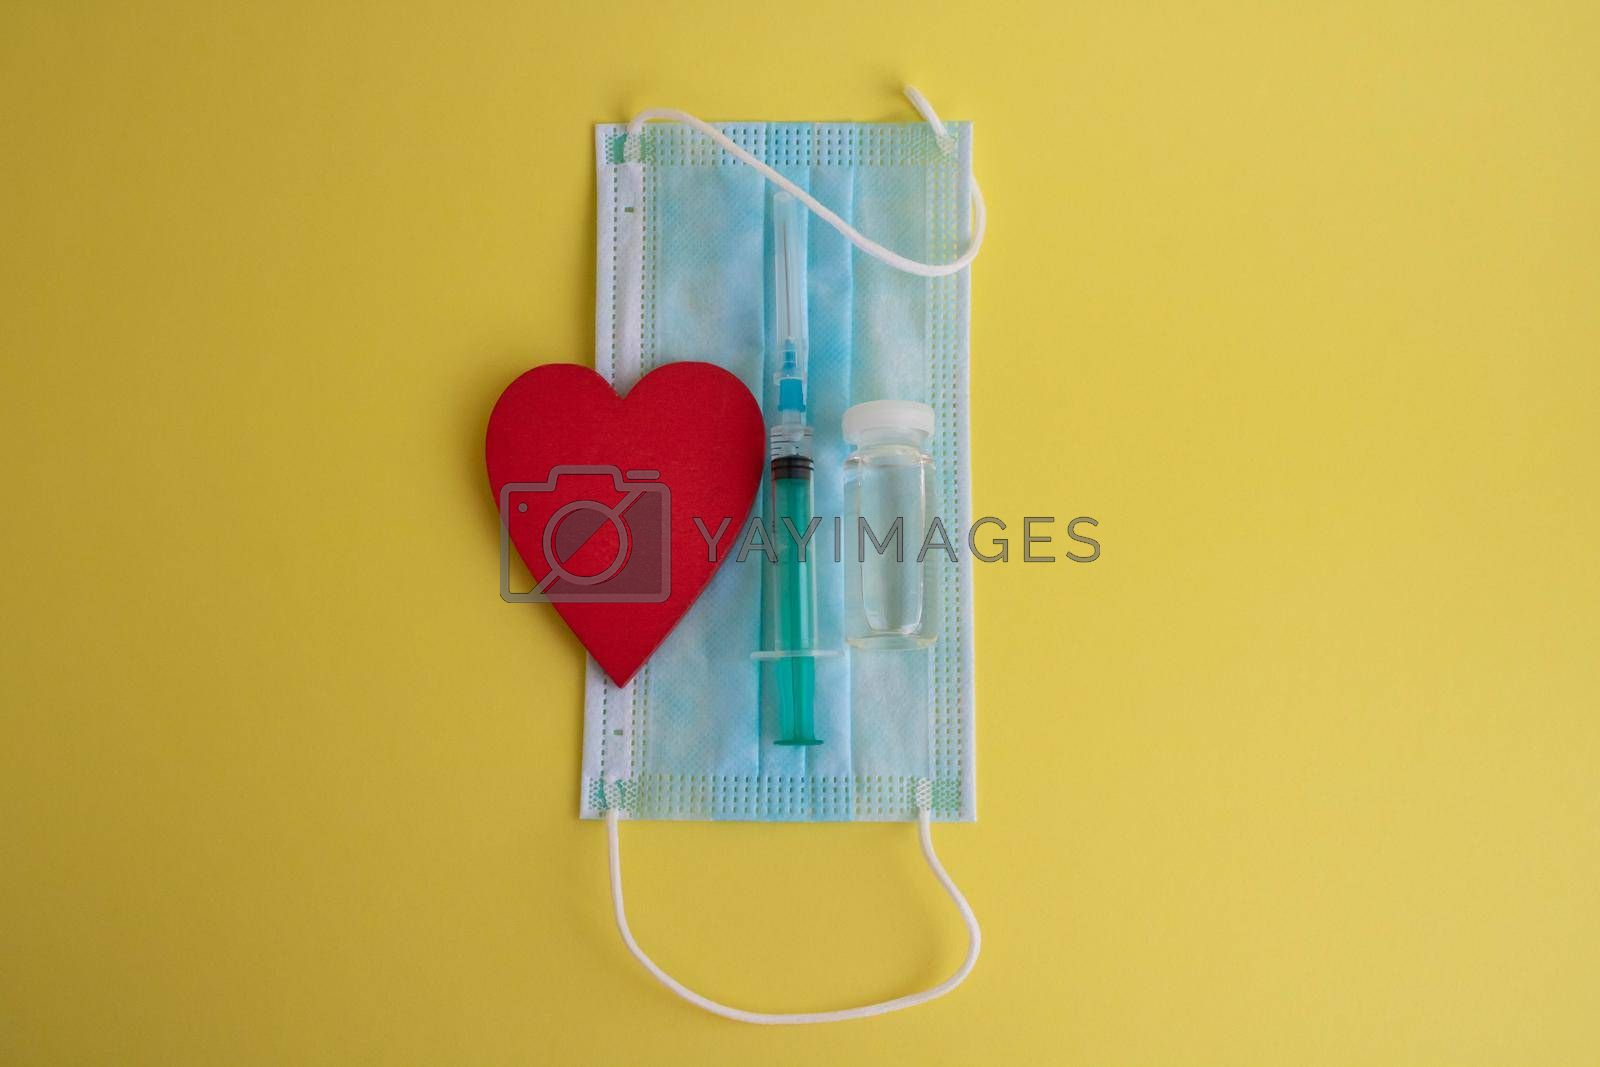 On a yellow background-a mask, a syringe, a bottle of vaccine and a red heart. The concept of medicine and health care.